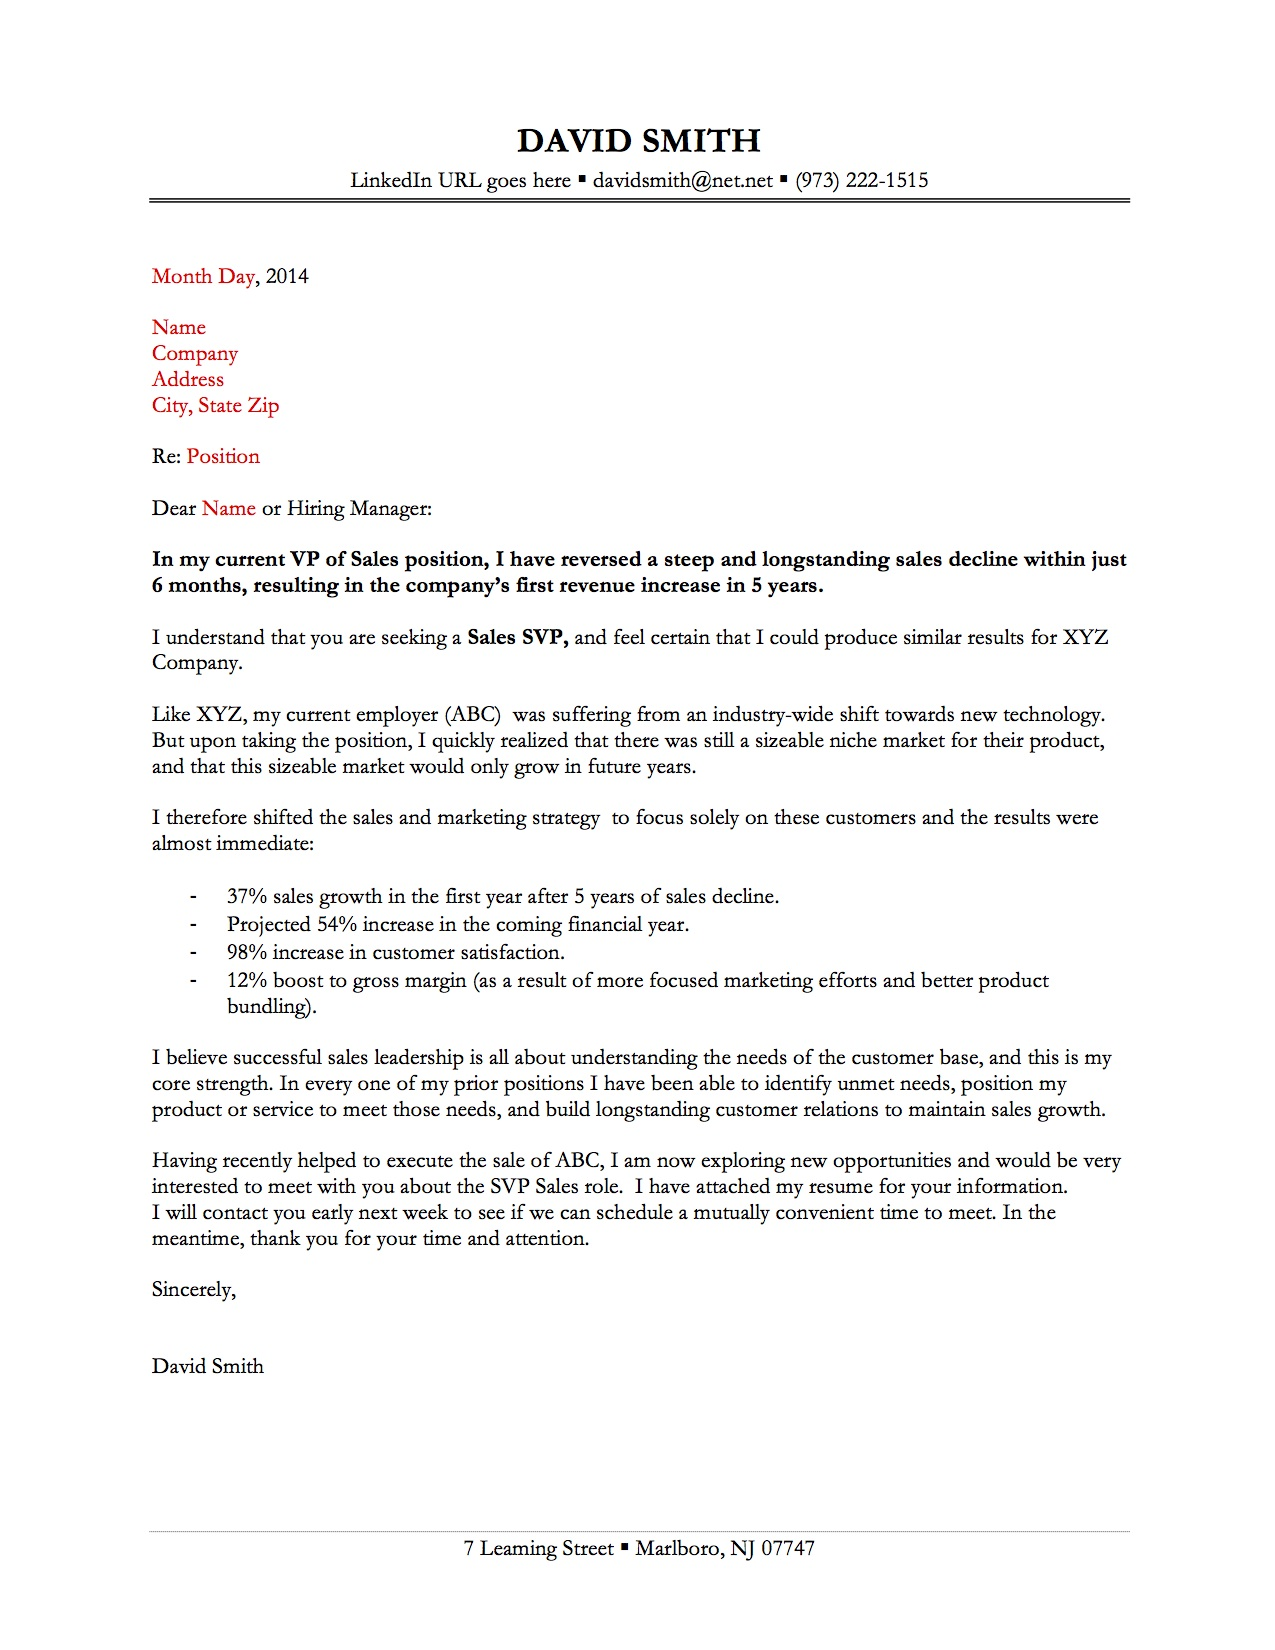 sky satellite engineer cover letter animation director sample sample cover letter 2 sky satellite engineer cover letterhtml health and safety engineer cover - Product Safety Engineer Sample Resume